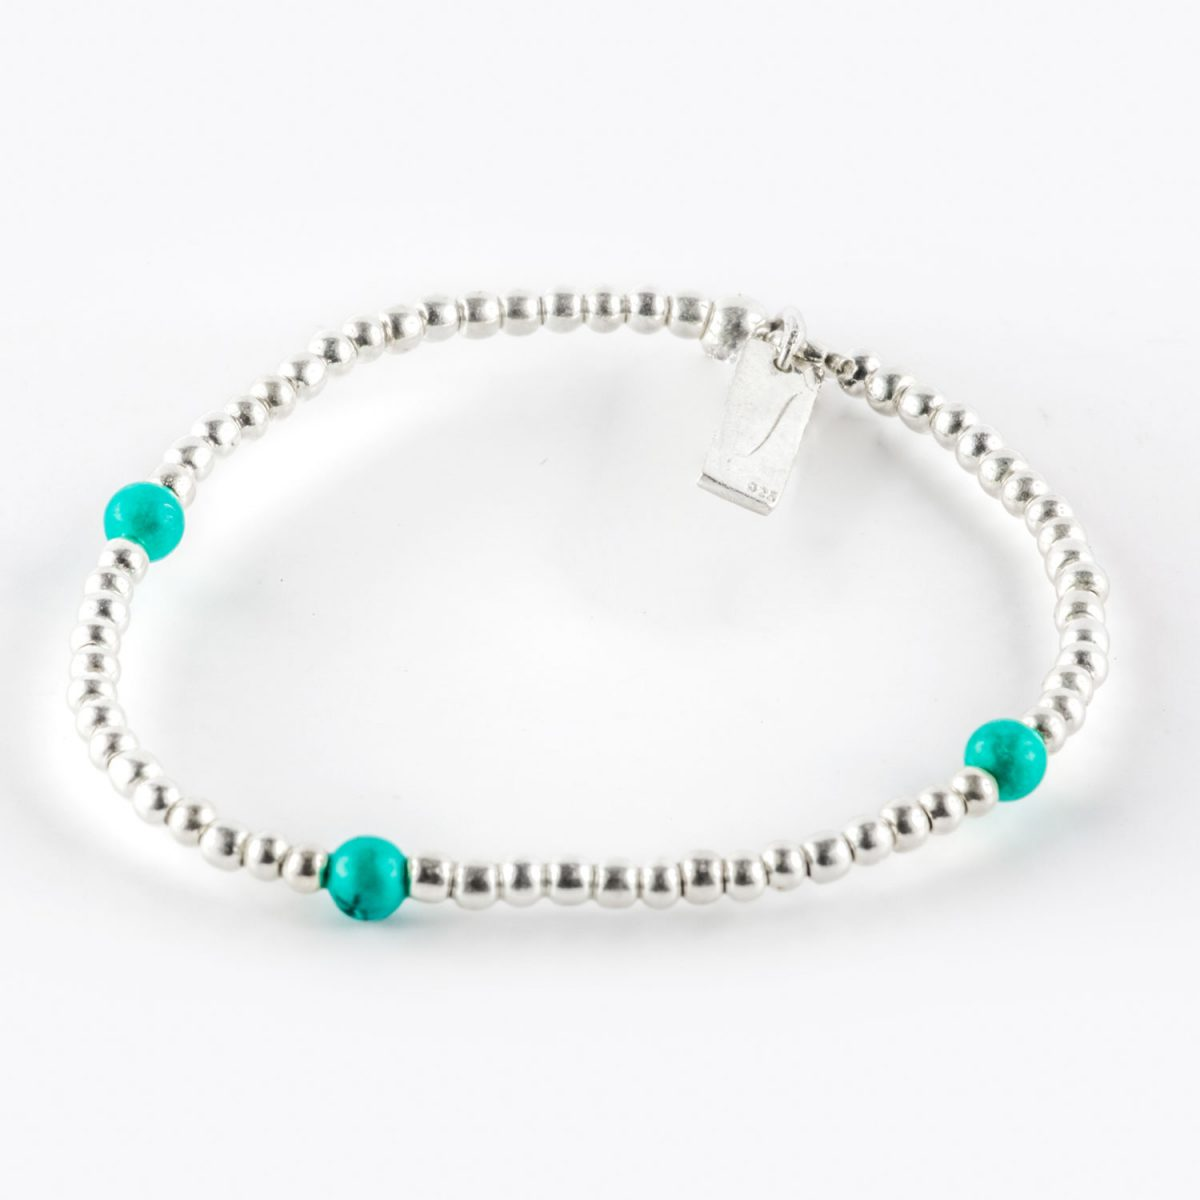 Child's Elasticated Bracelet with solid silver beads and 3 turquoise beads